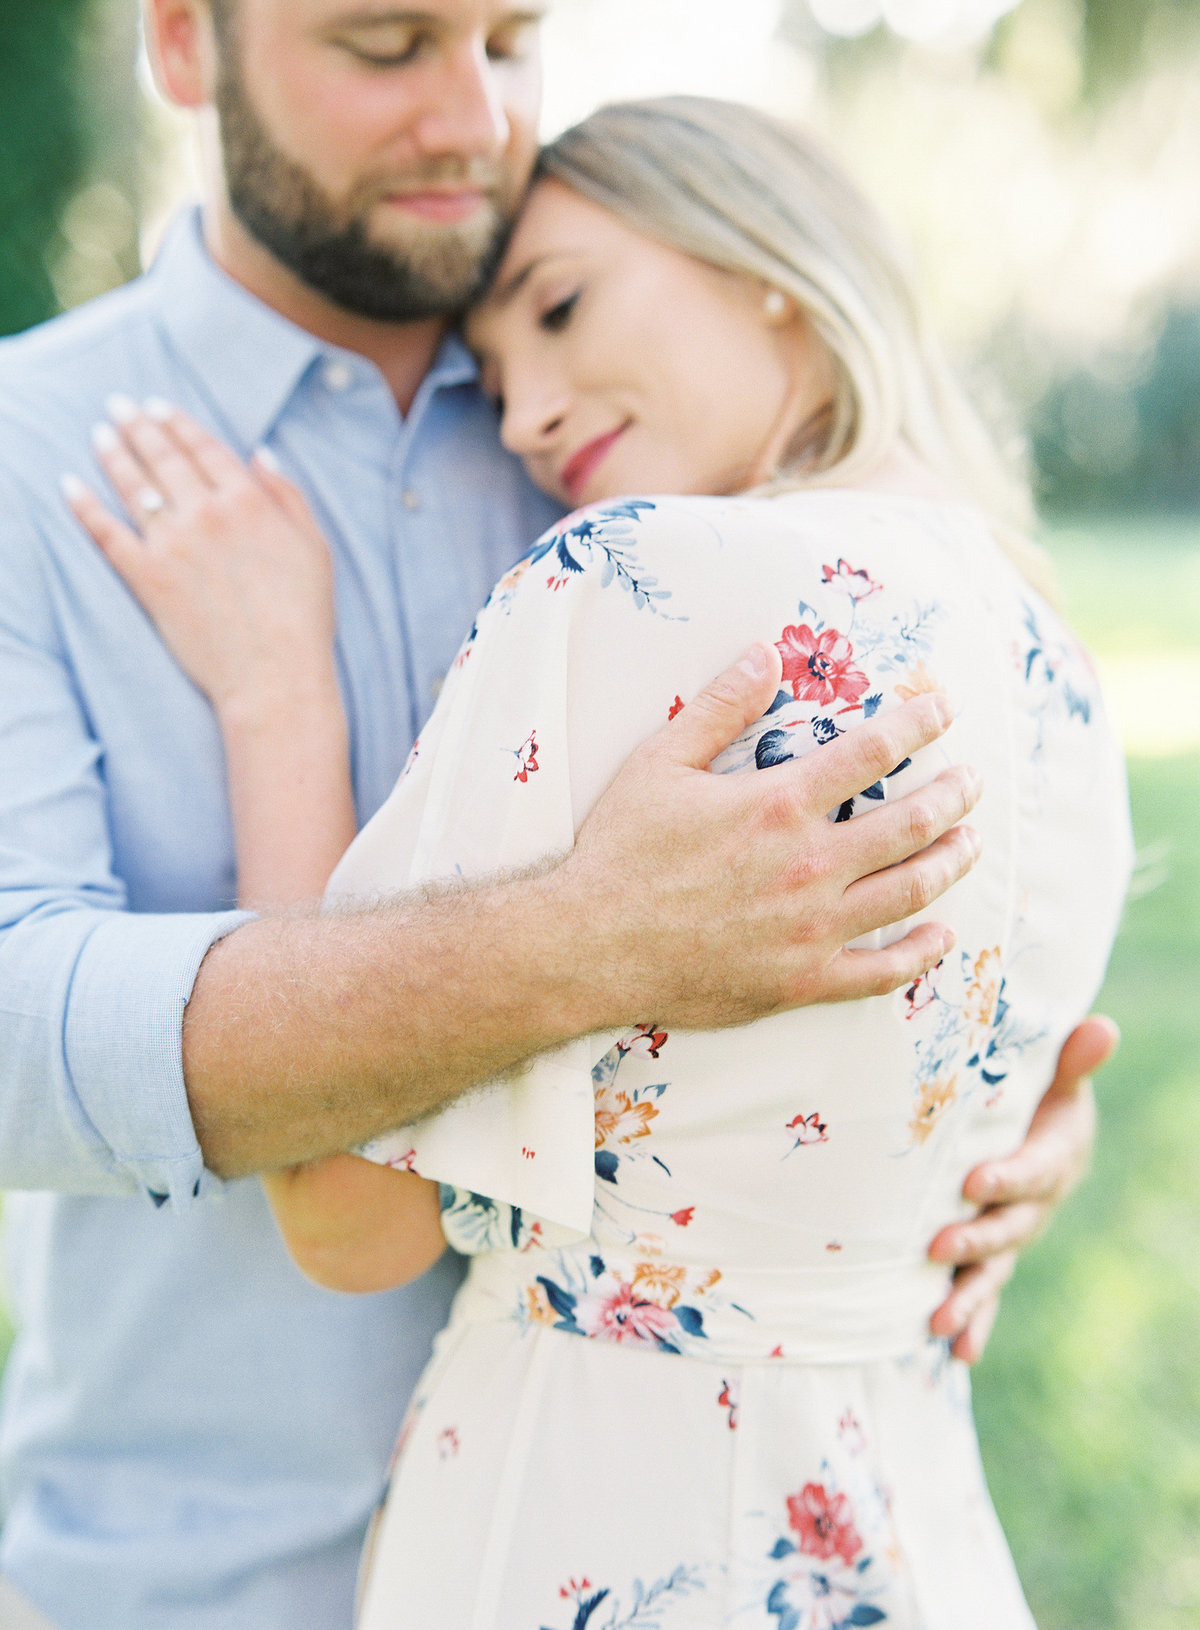 Bok_Tower_Garden_Film_Fine_Art_Engagement_Session-11